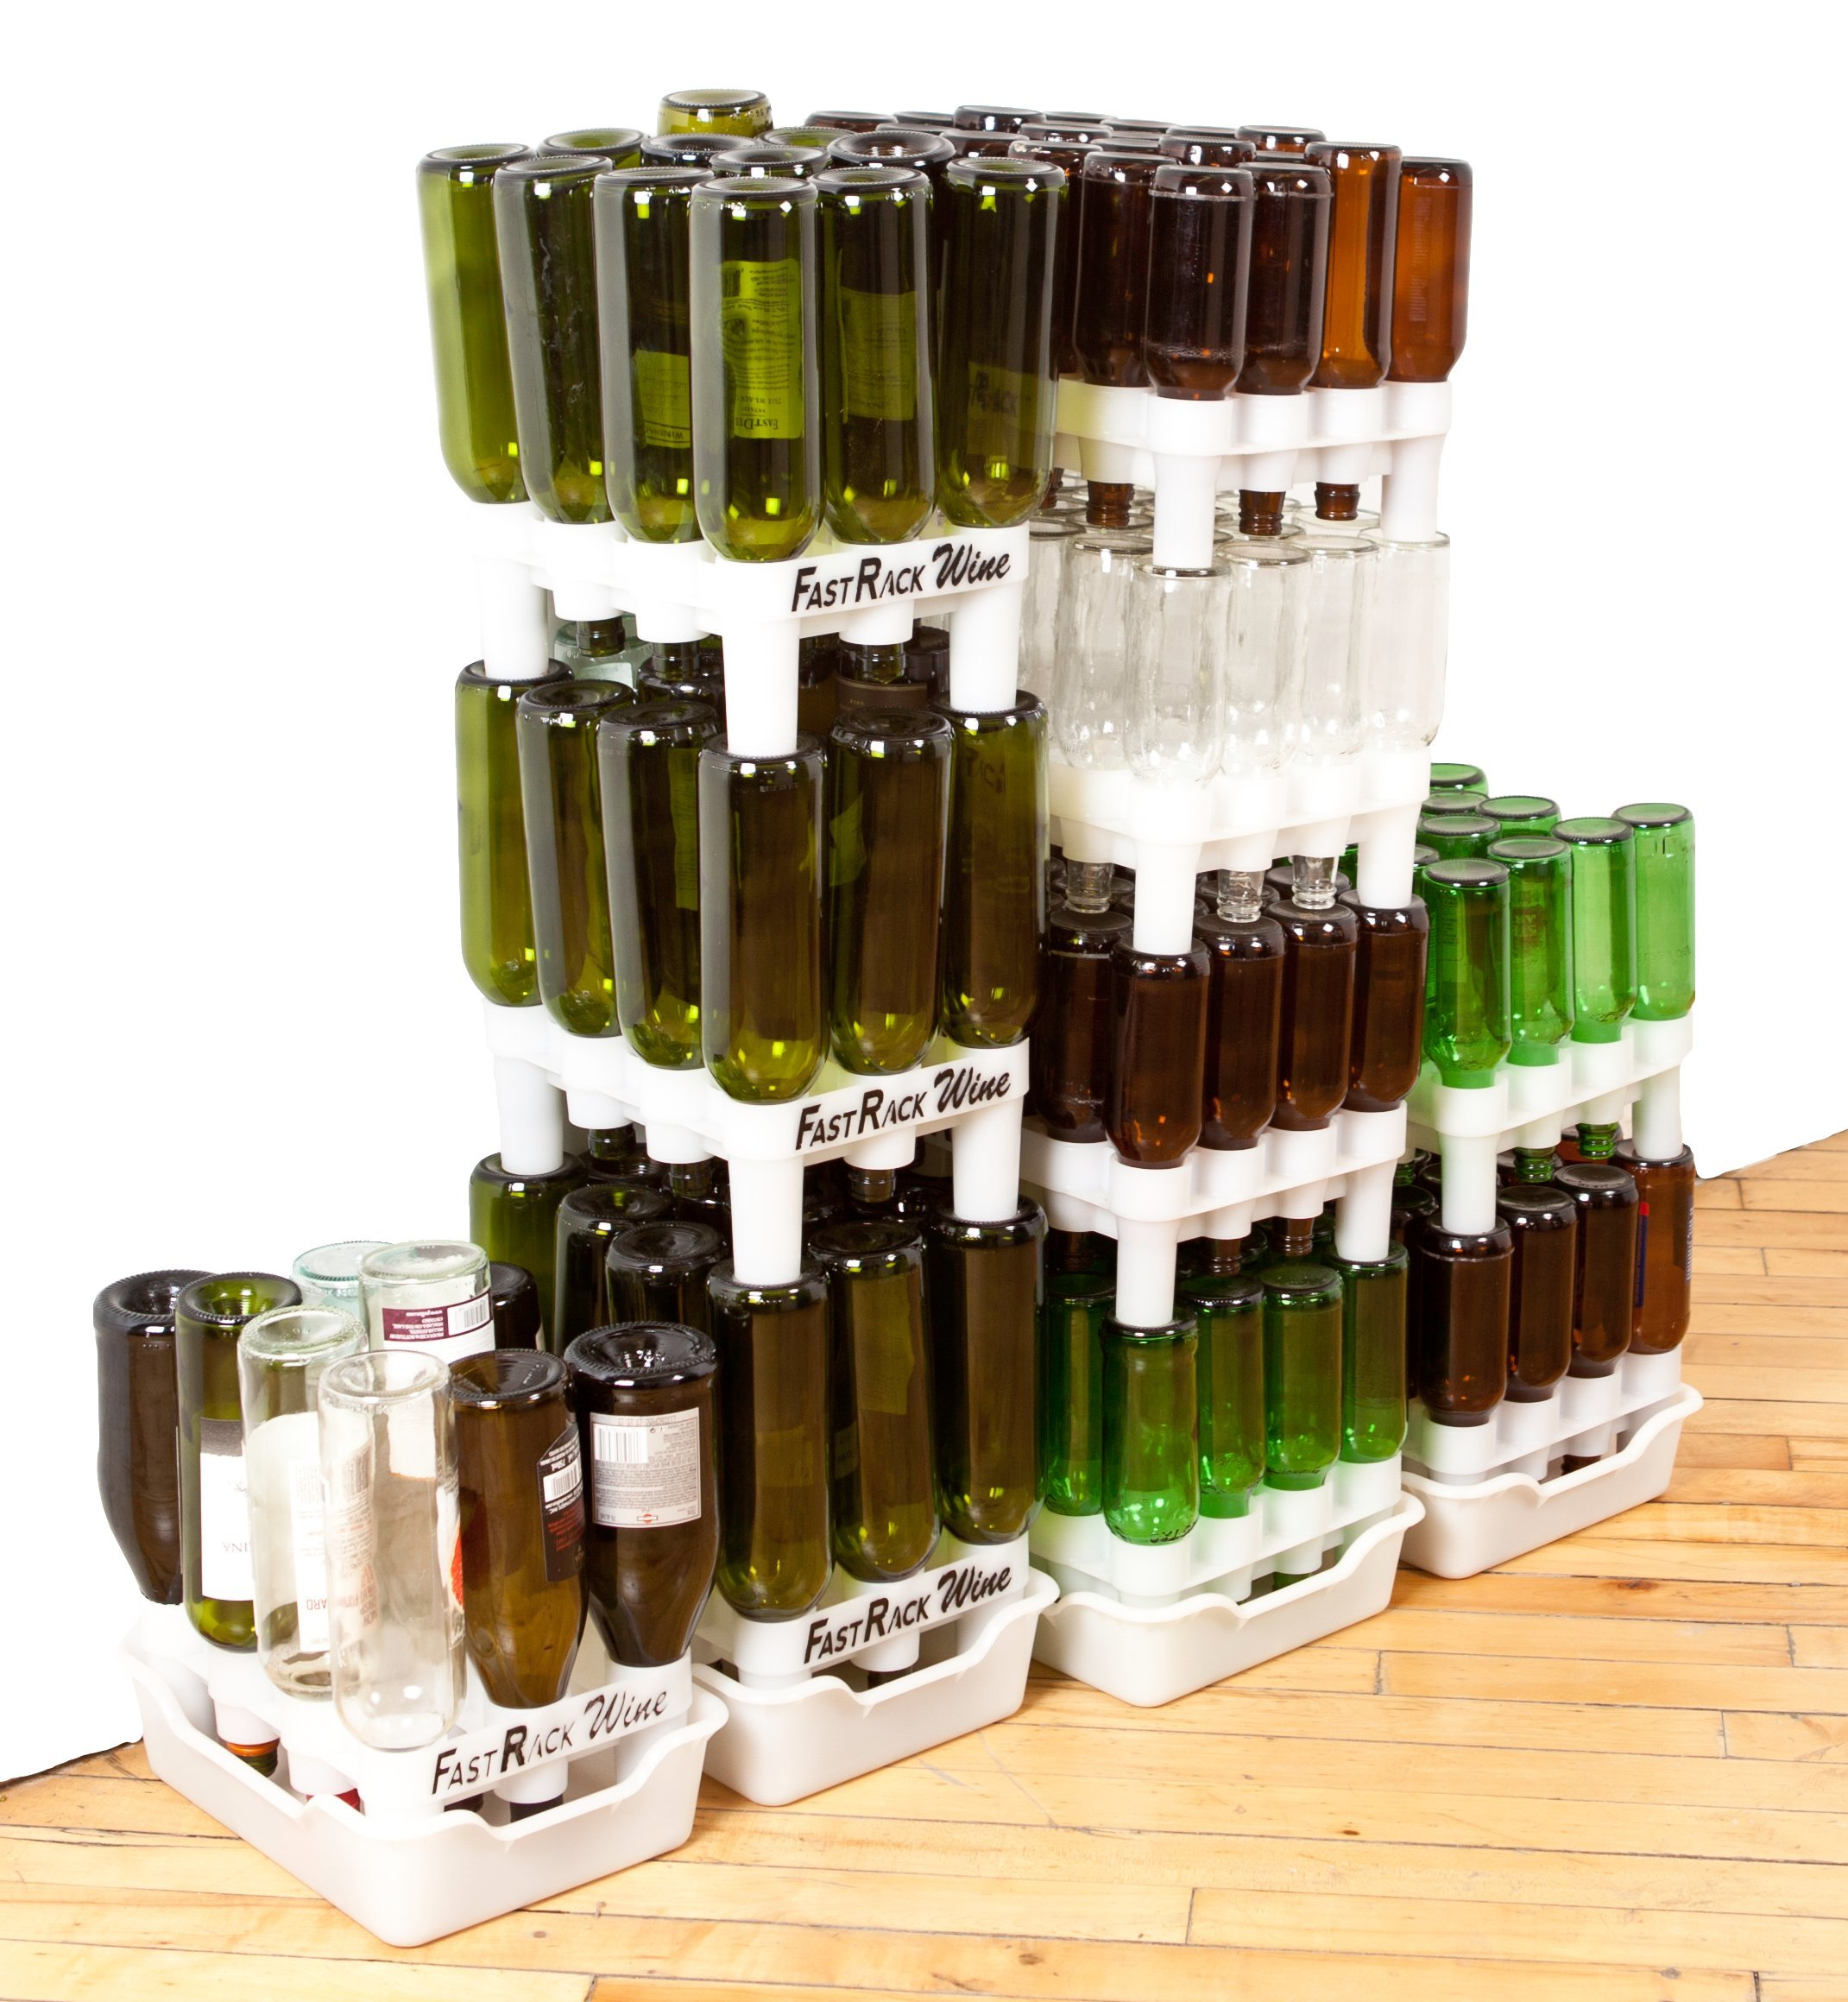 FastRack Bottle Drying Rack & Tray Kit - Bottle Drying Tree alternative; Dry or Store your Beer, Wine or Bomber/Belgian Bottles; Add to your Home Brewing Supplies by Fastrack (Image #12)